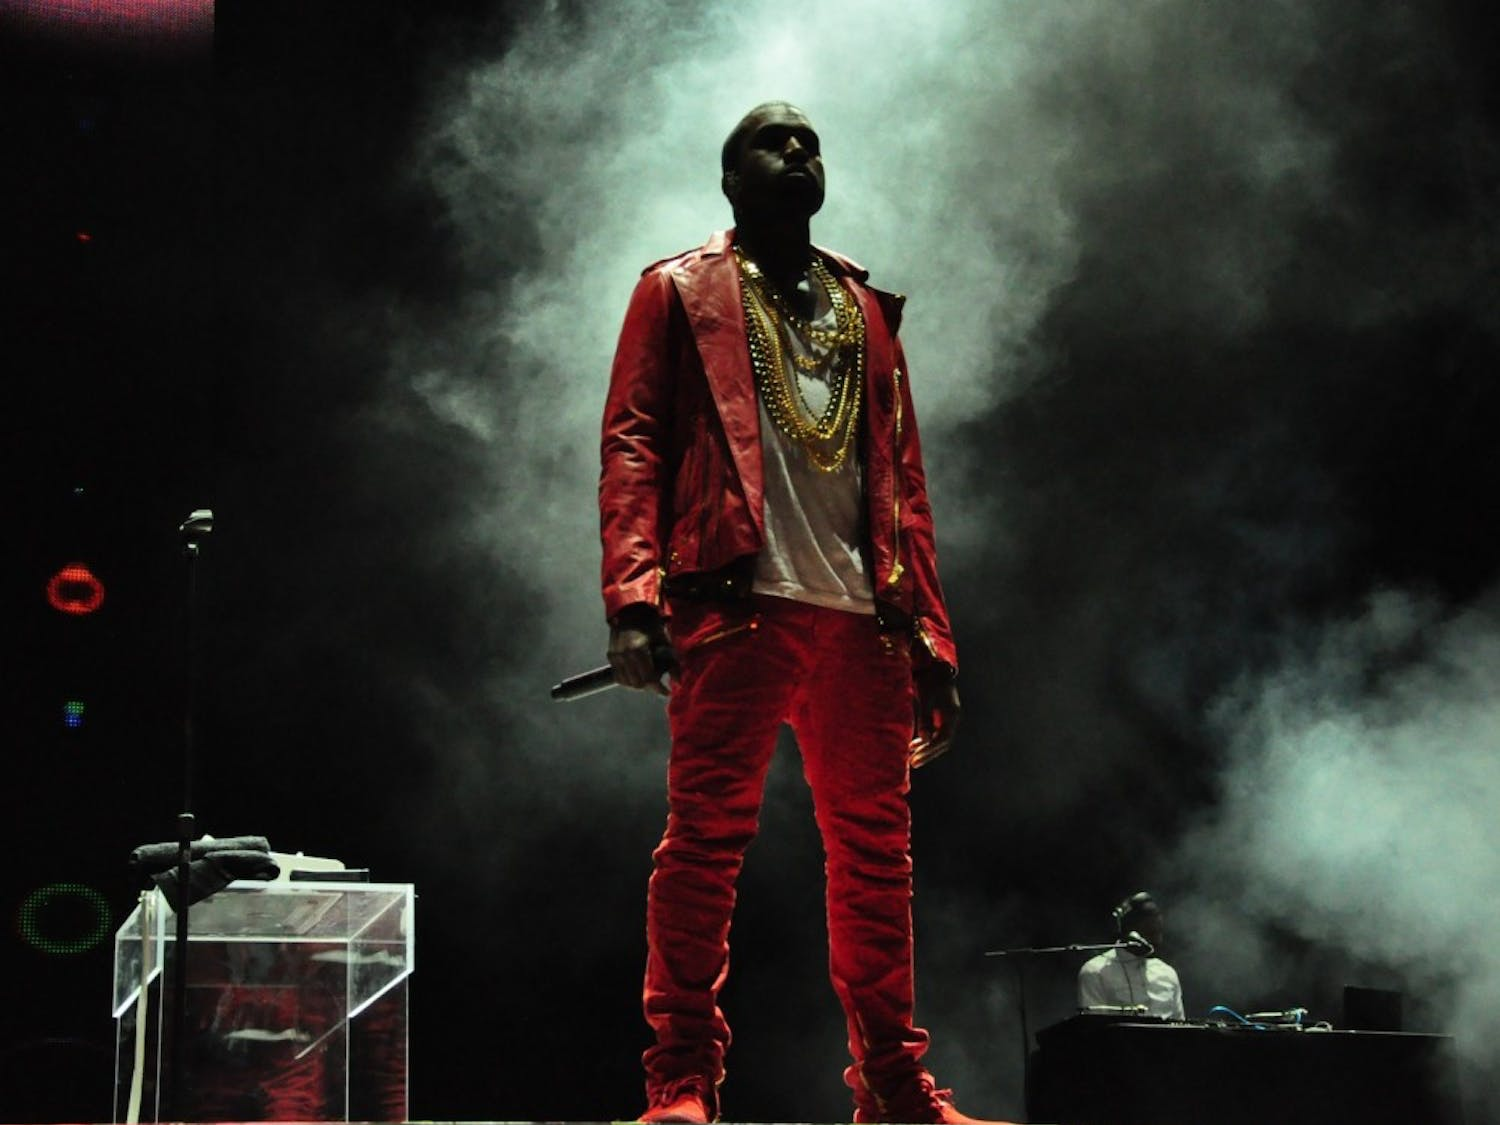 The WUD Society and Politics hosted discussionseemed only to hint at Kanye West's impact in 2018, while most attendees were very comfortable defending his impact on the music industry as a whole.